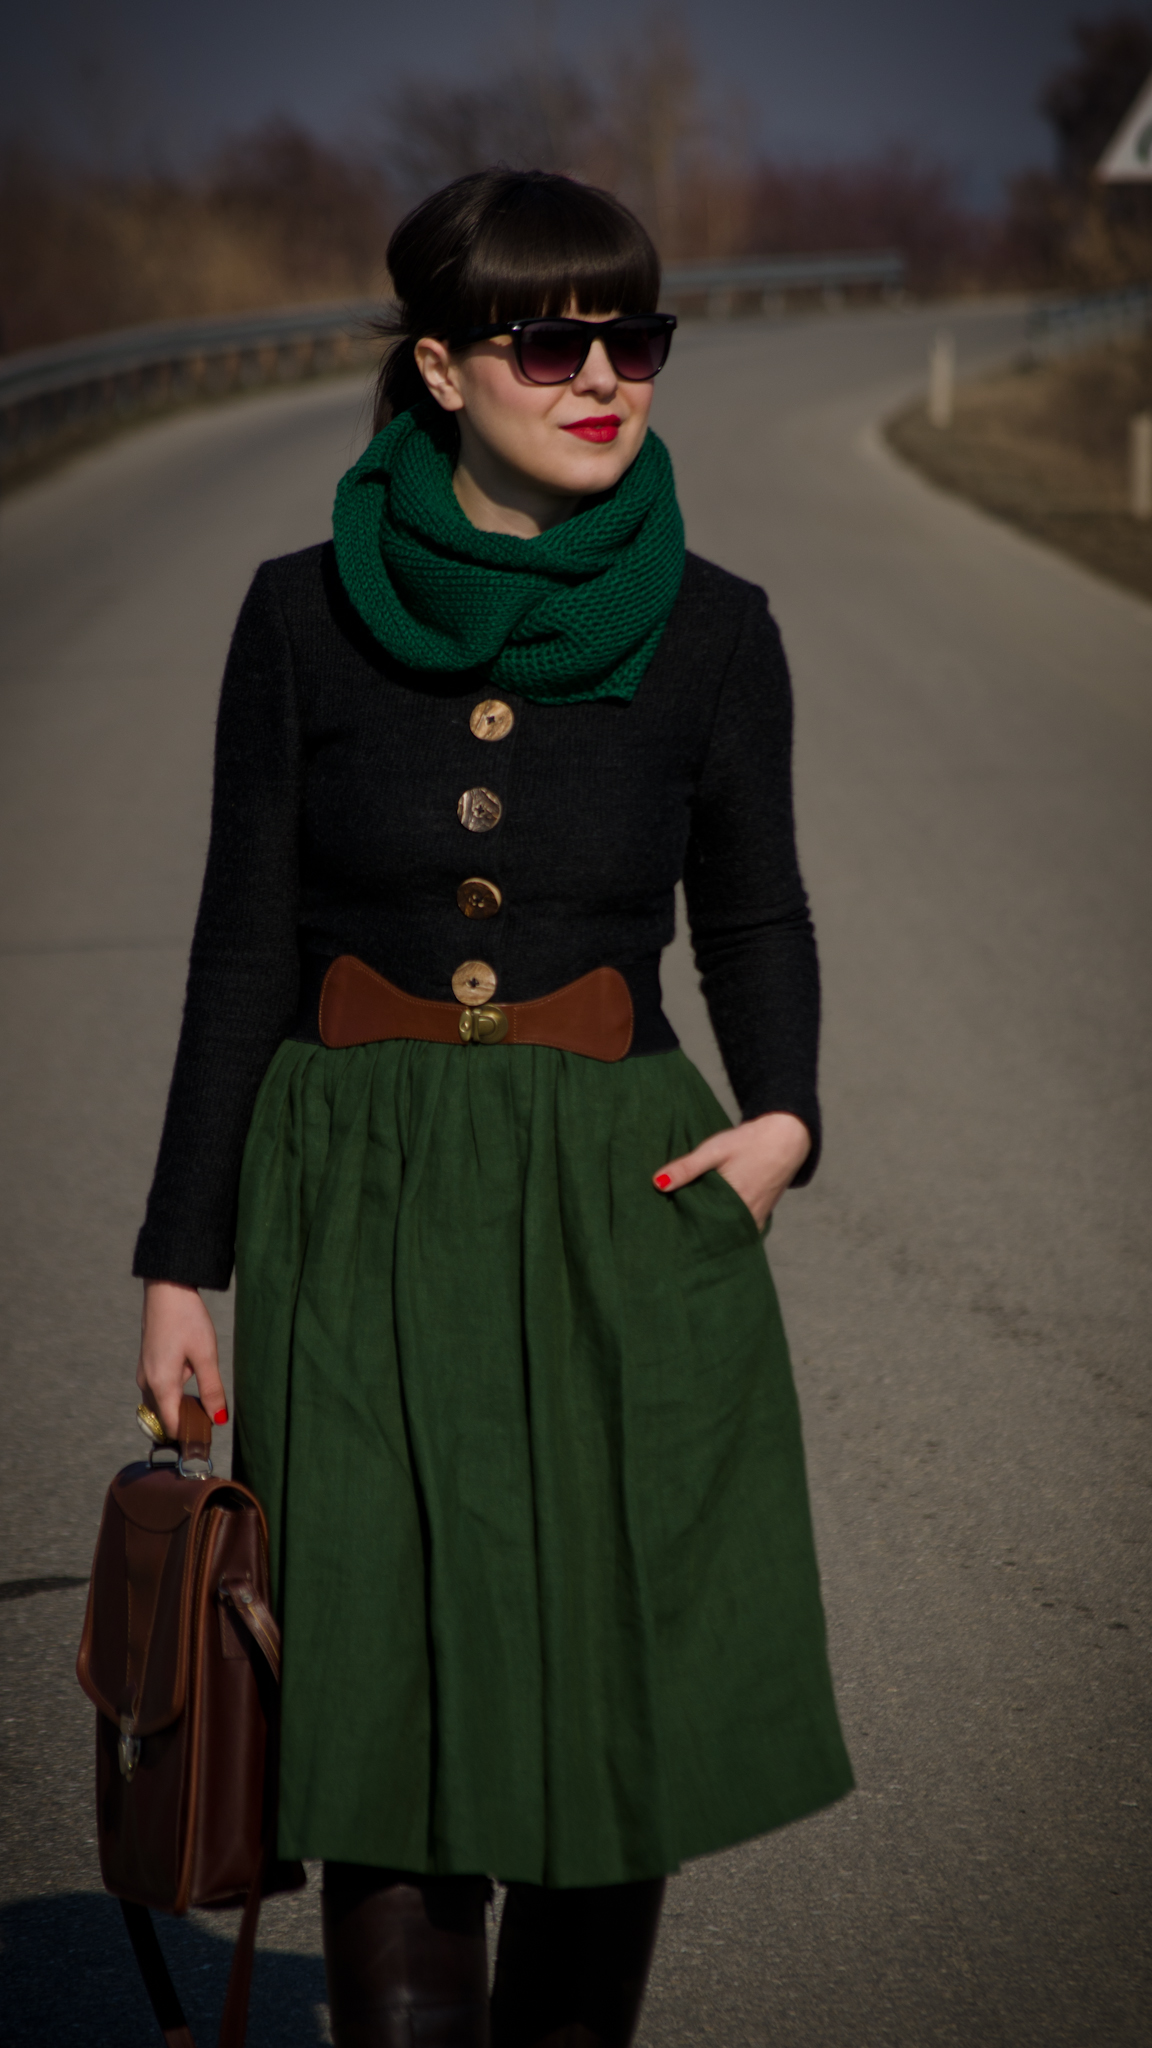 khaki midi dress thrifted brown boots green scarf army green outfit brown satchel bag